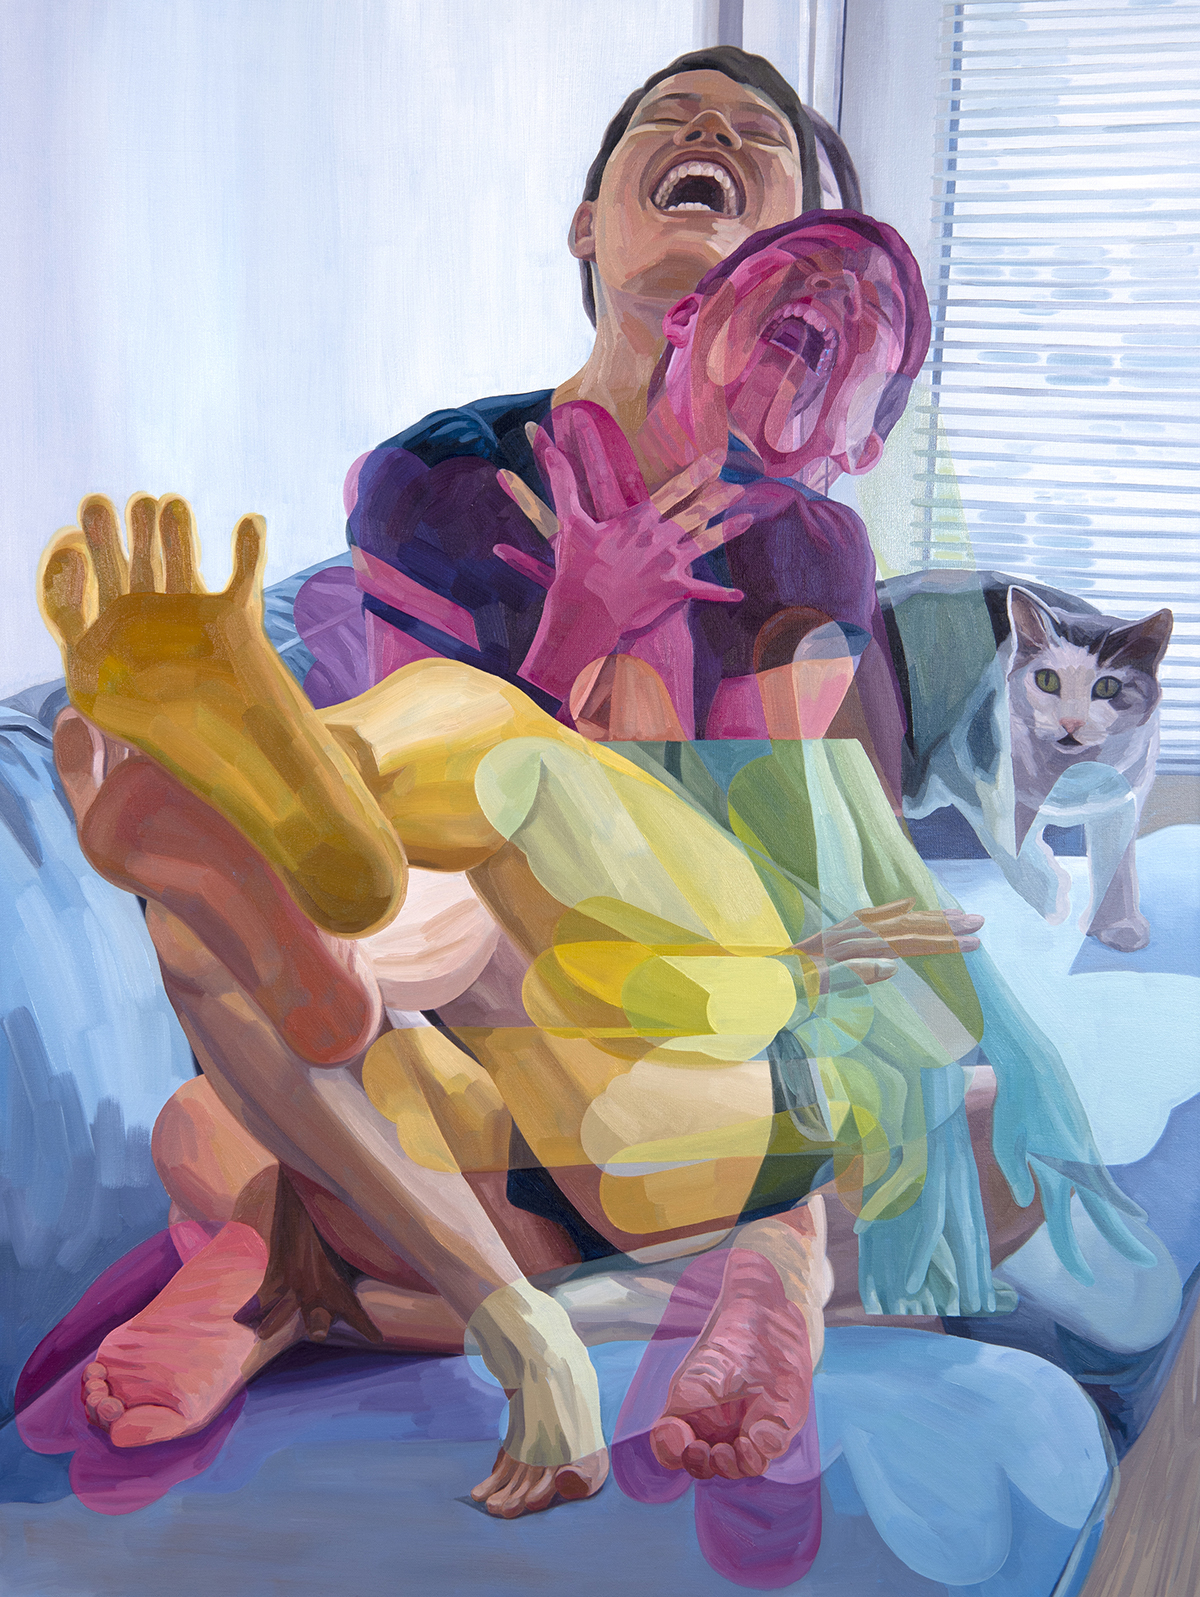 A self-portrait painting by Melissa Huang, accompanied by her cat.